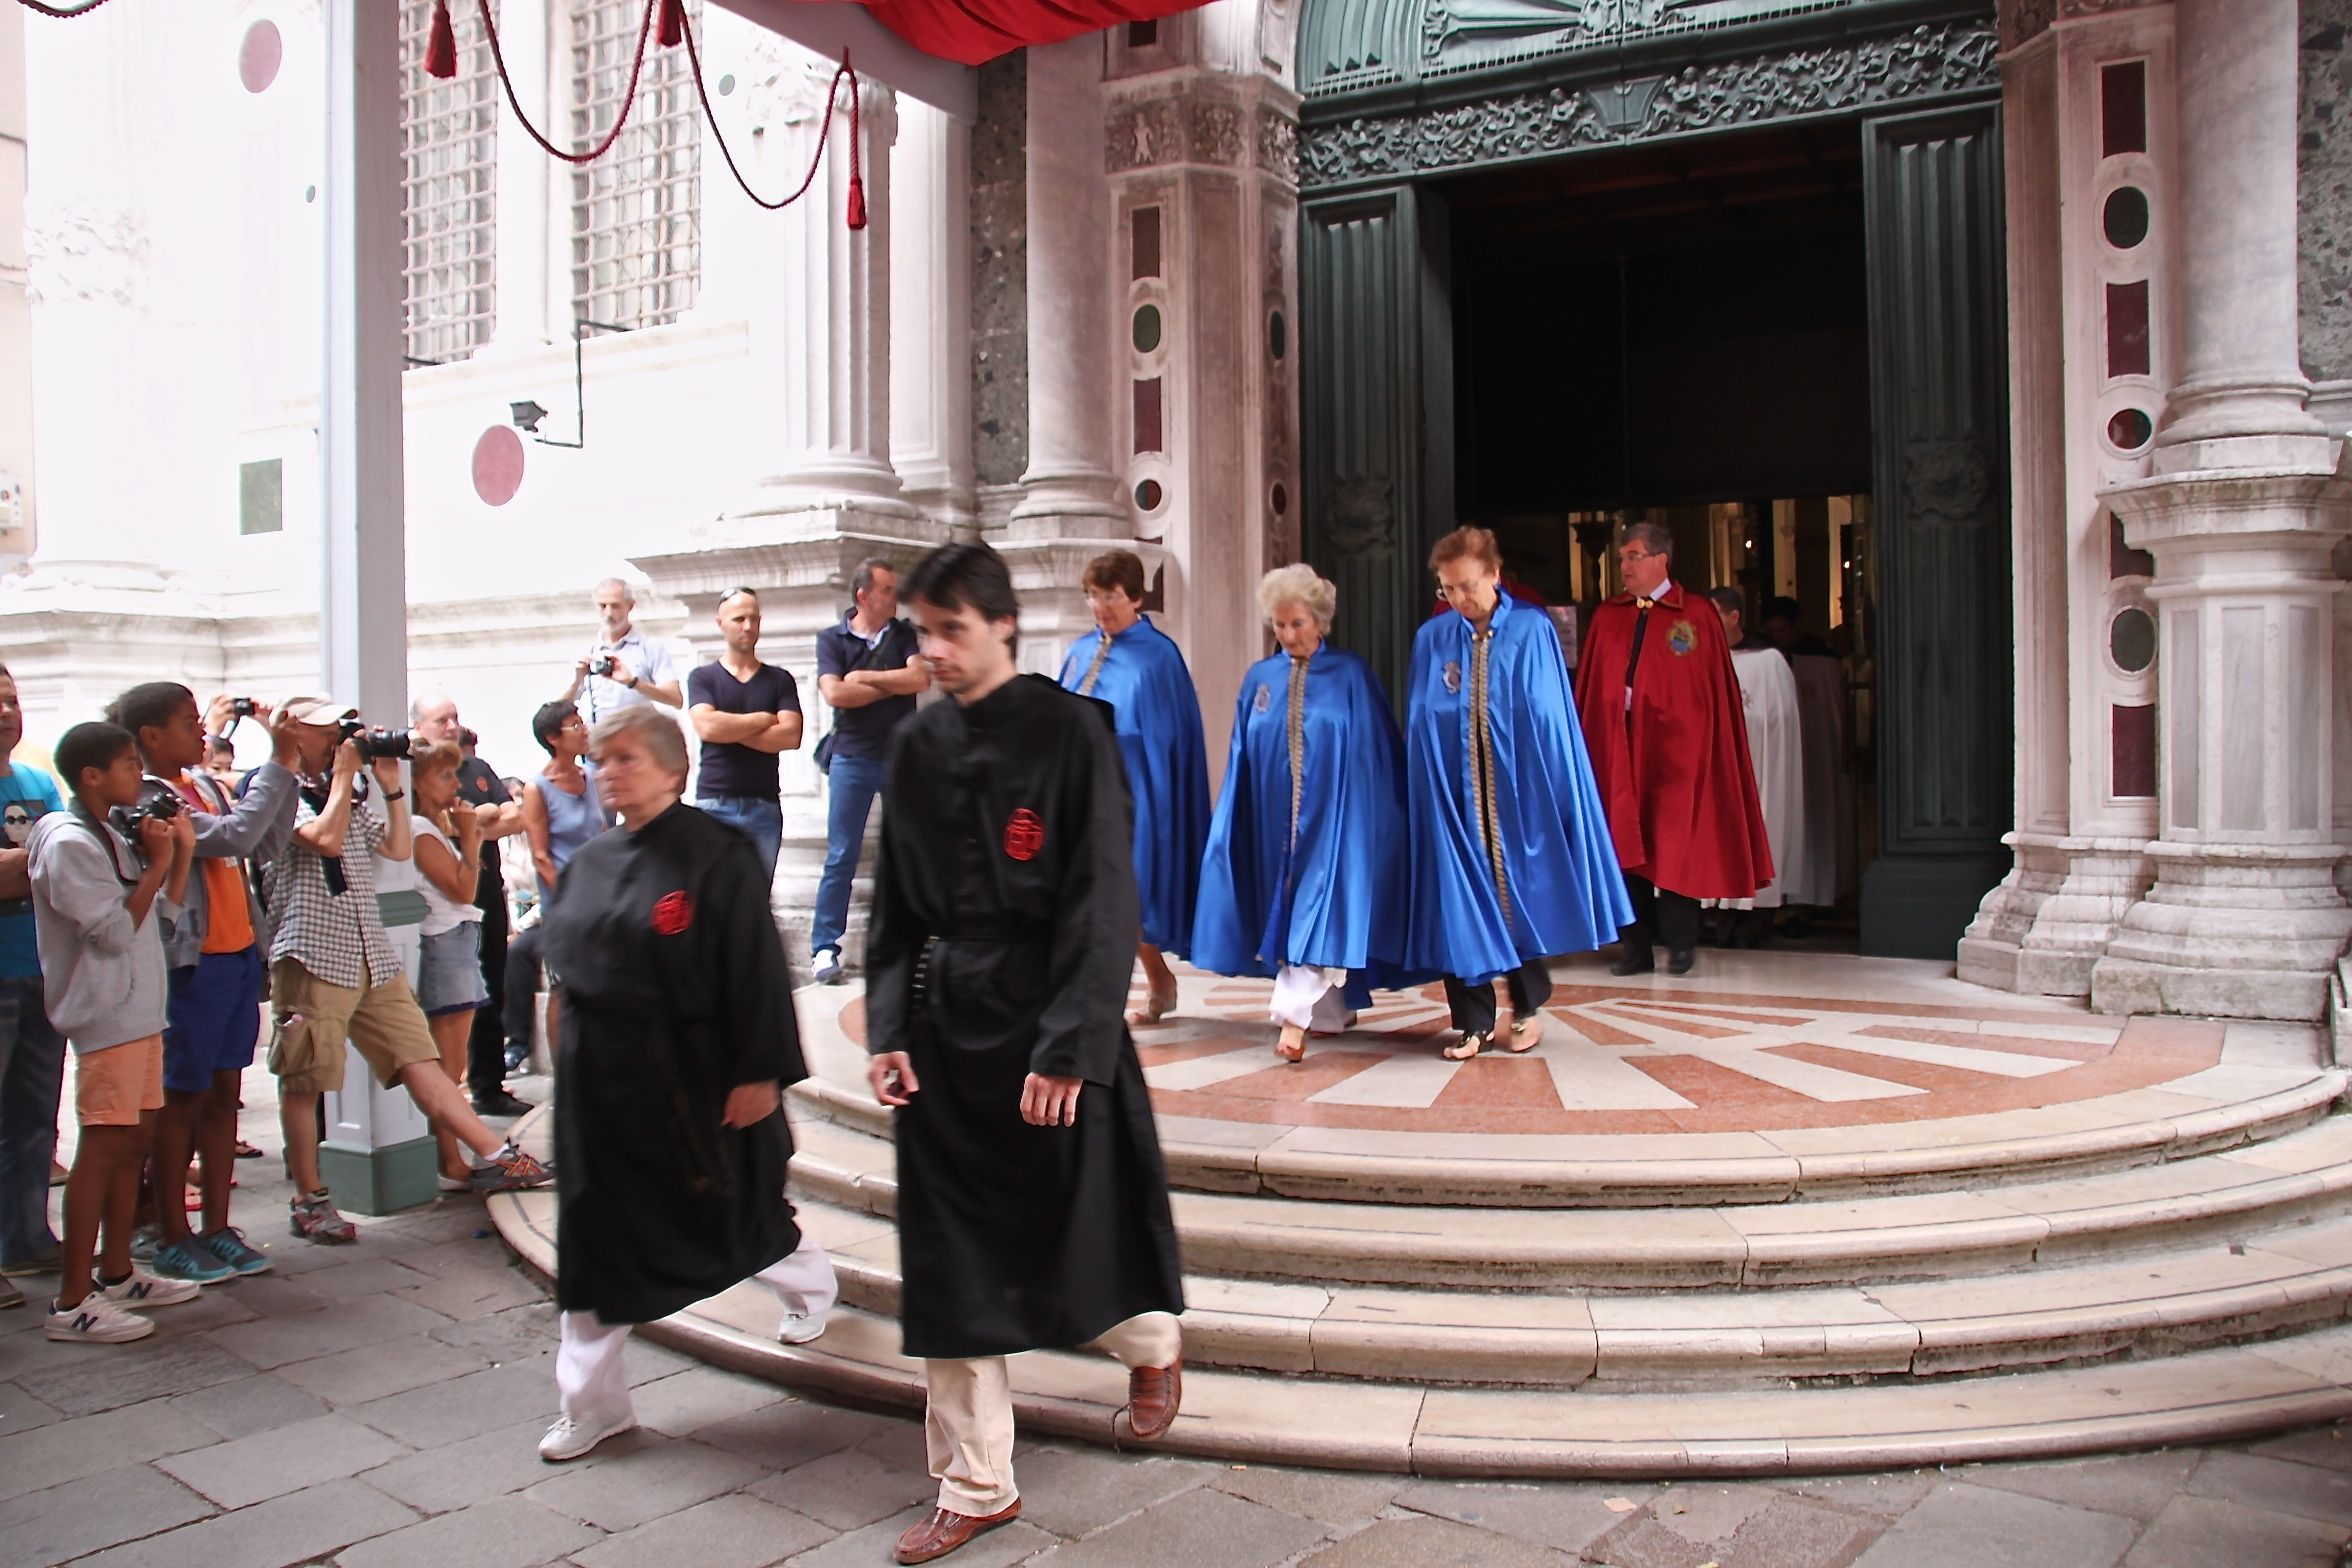 Robed members of the confraternity of San Rocco process from the scuola to the church for mass